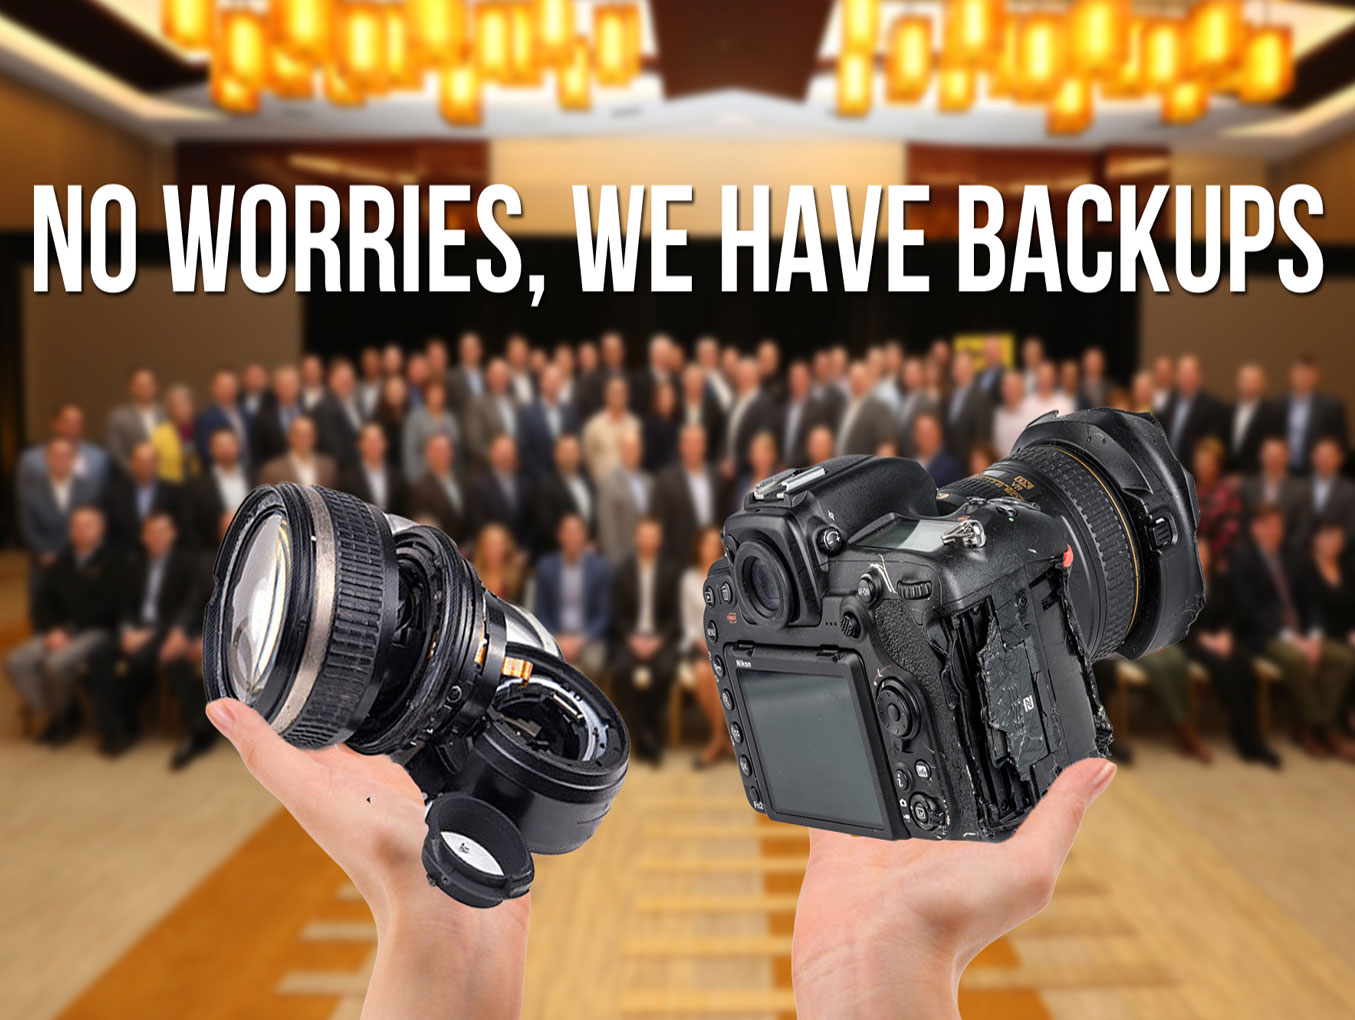 4 Reasons Why Photographers Need Backup Equipment